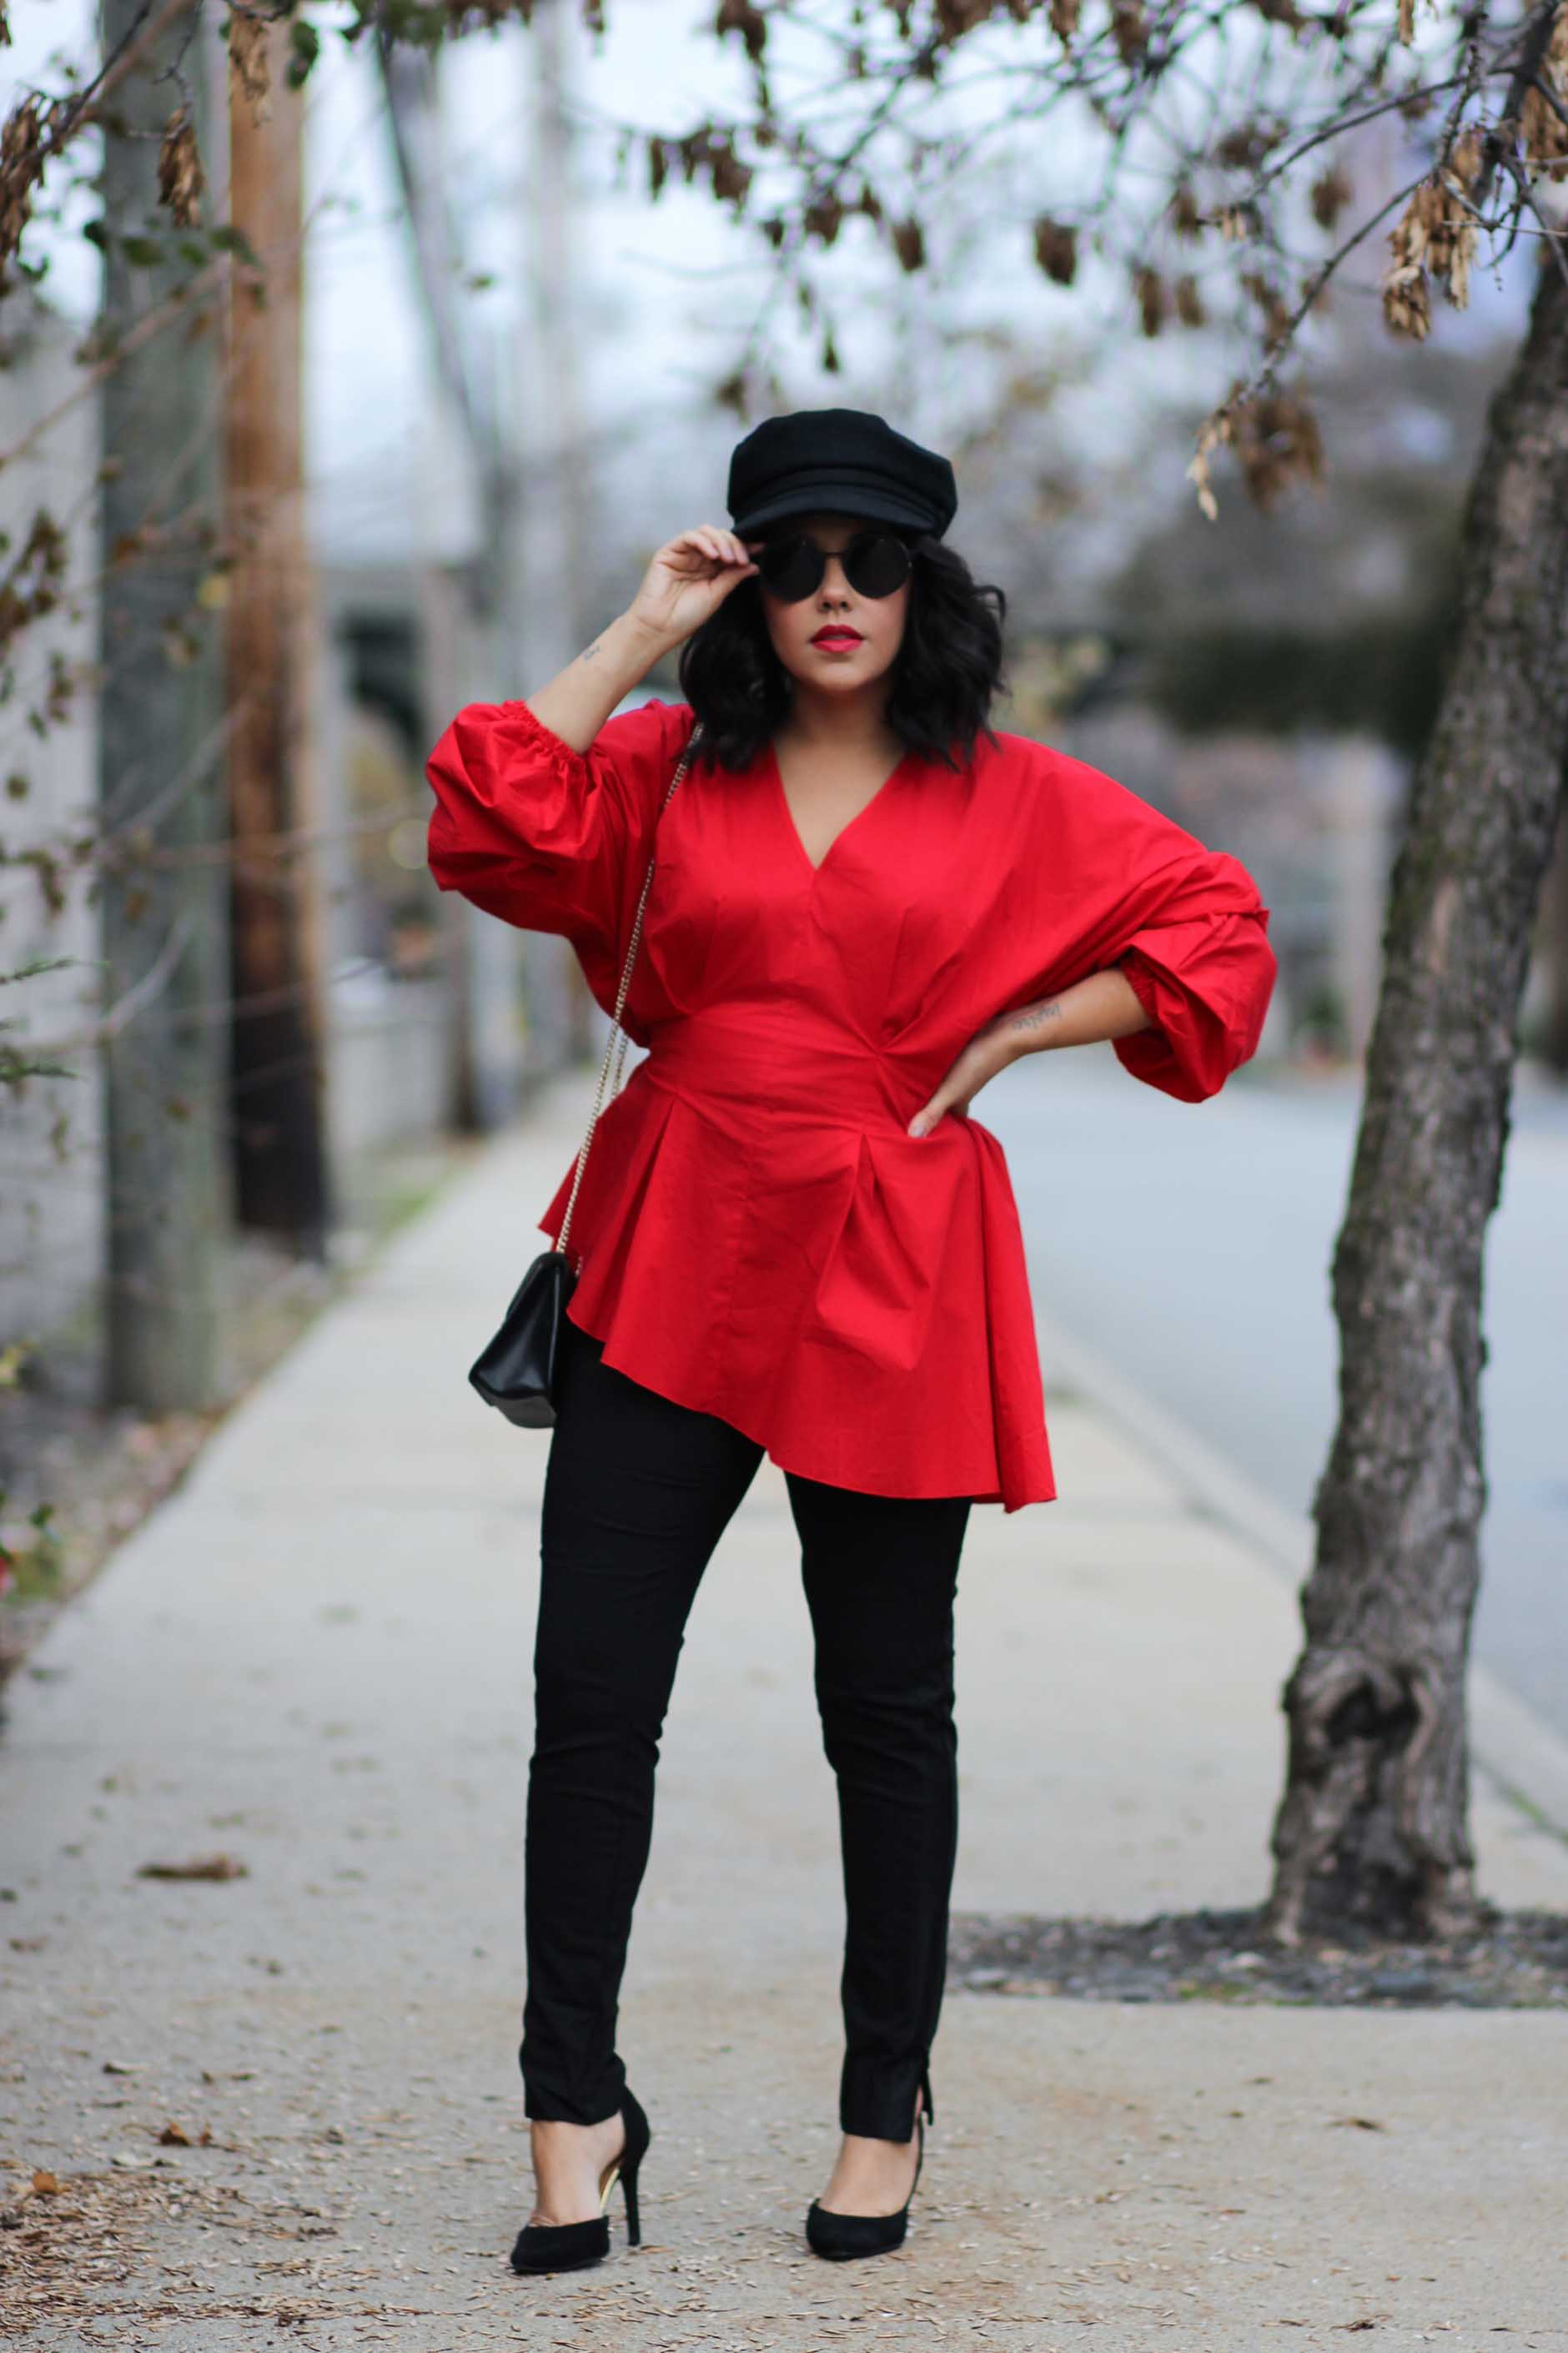 naty michele wearing a red puffy sleeve top from project runway and jcpenney